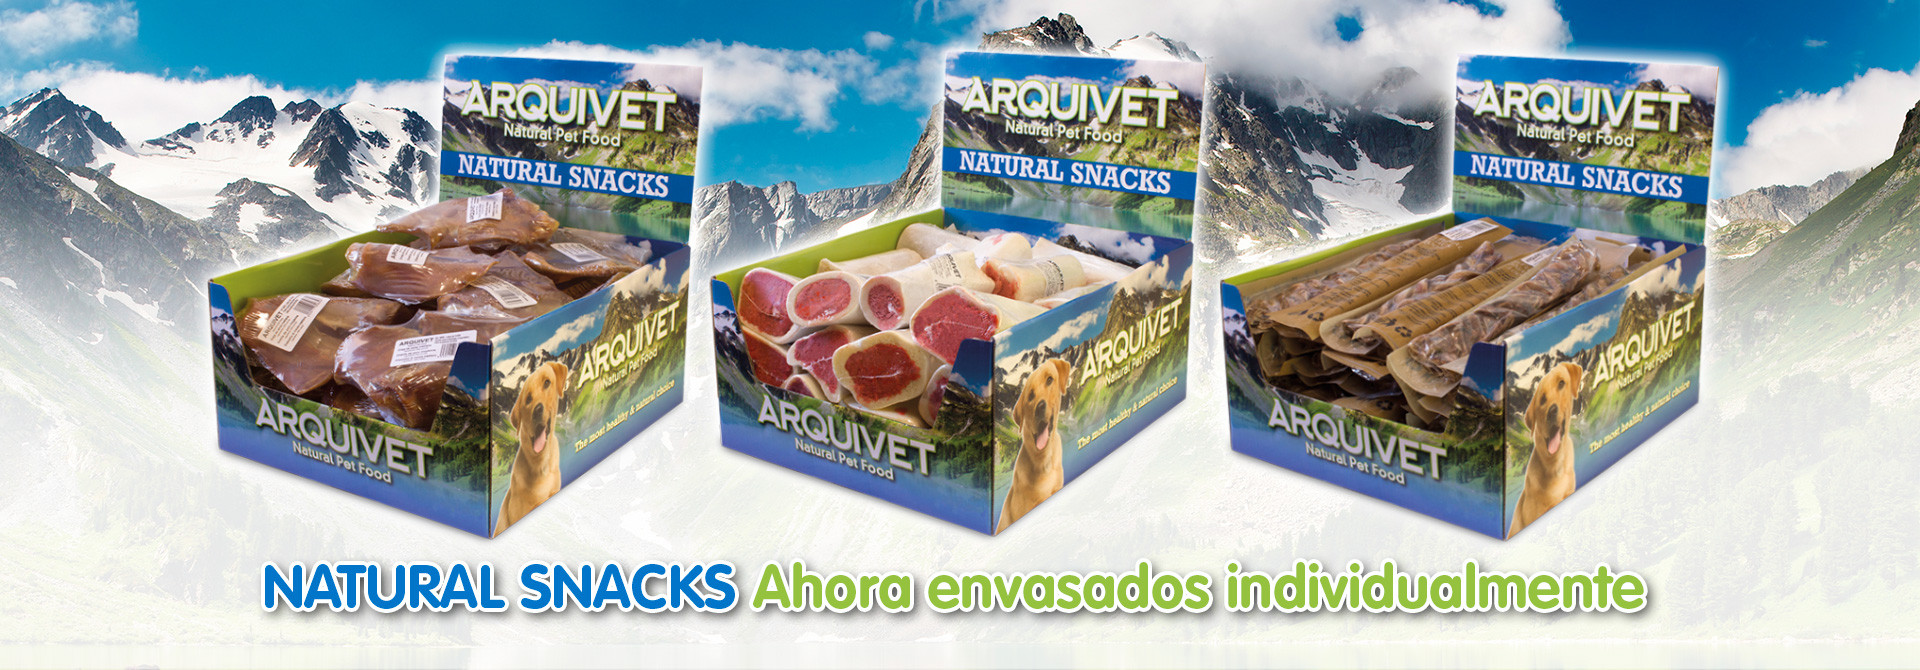 Natural Snacks en envase individual